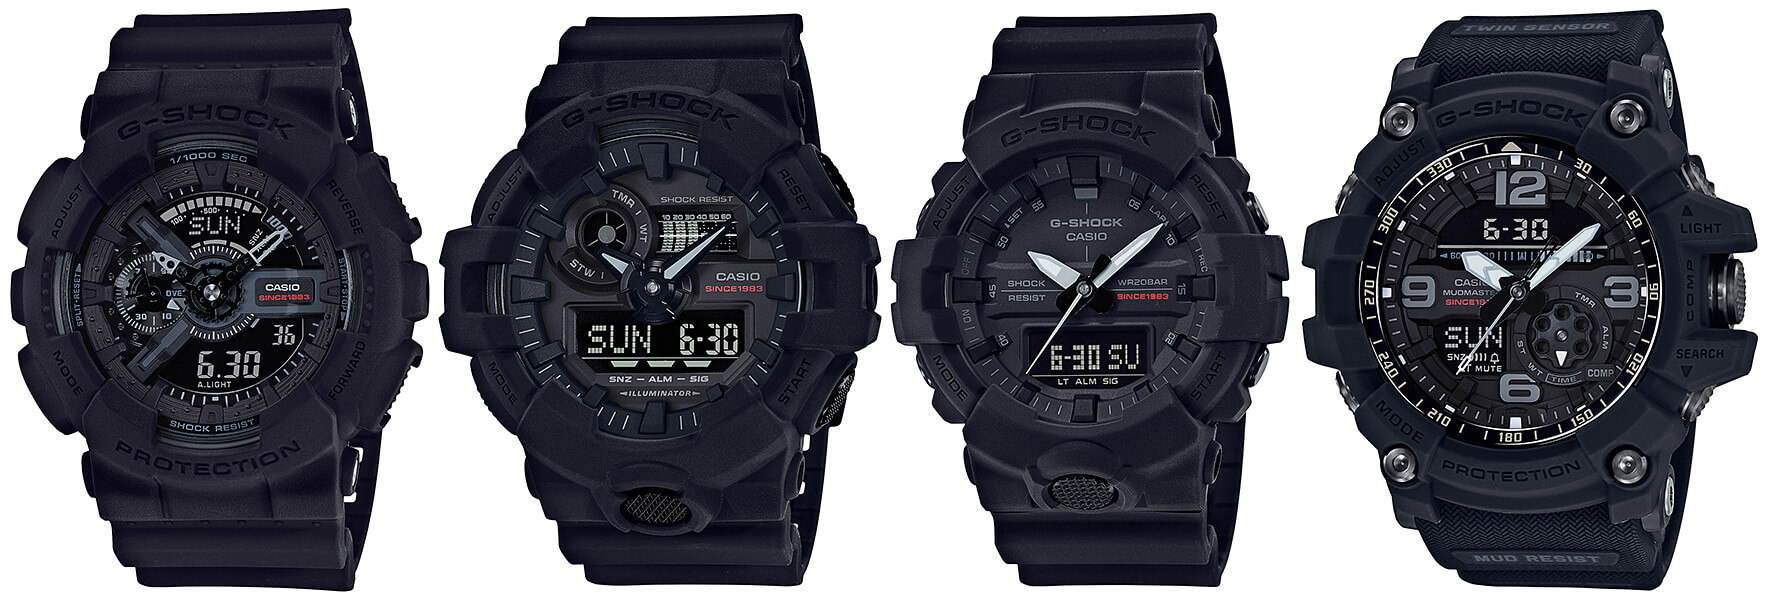 12558401f09 G-Shock 35th Anniversary Big Bang Black Watch Collection – G-Central ...